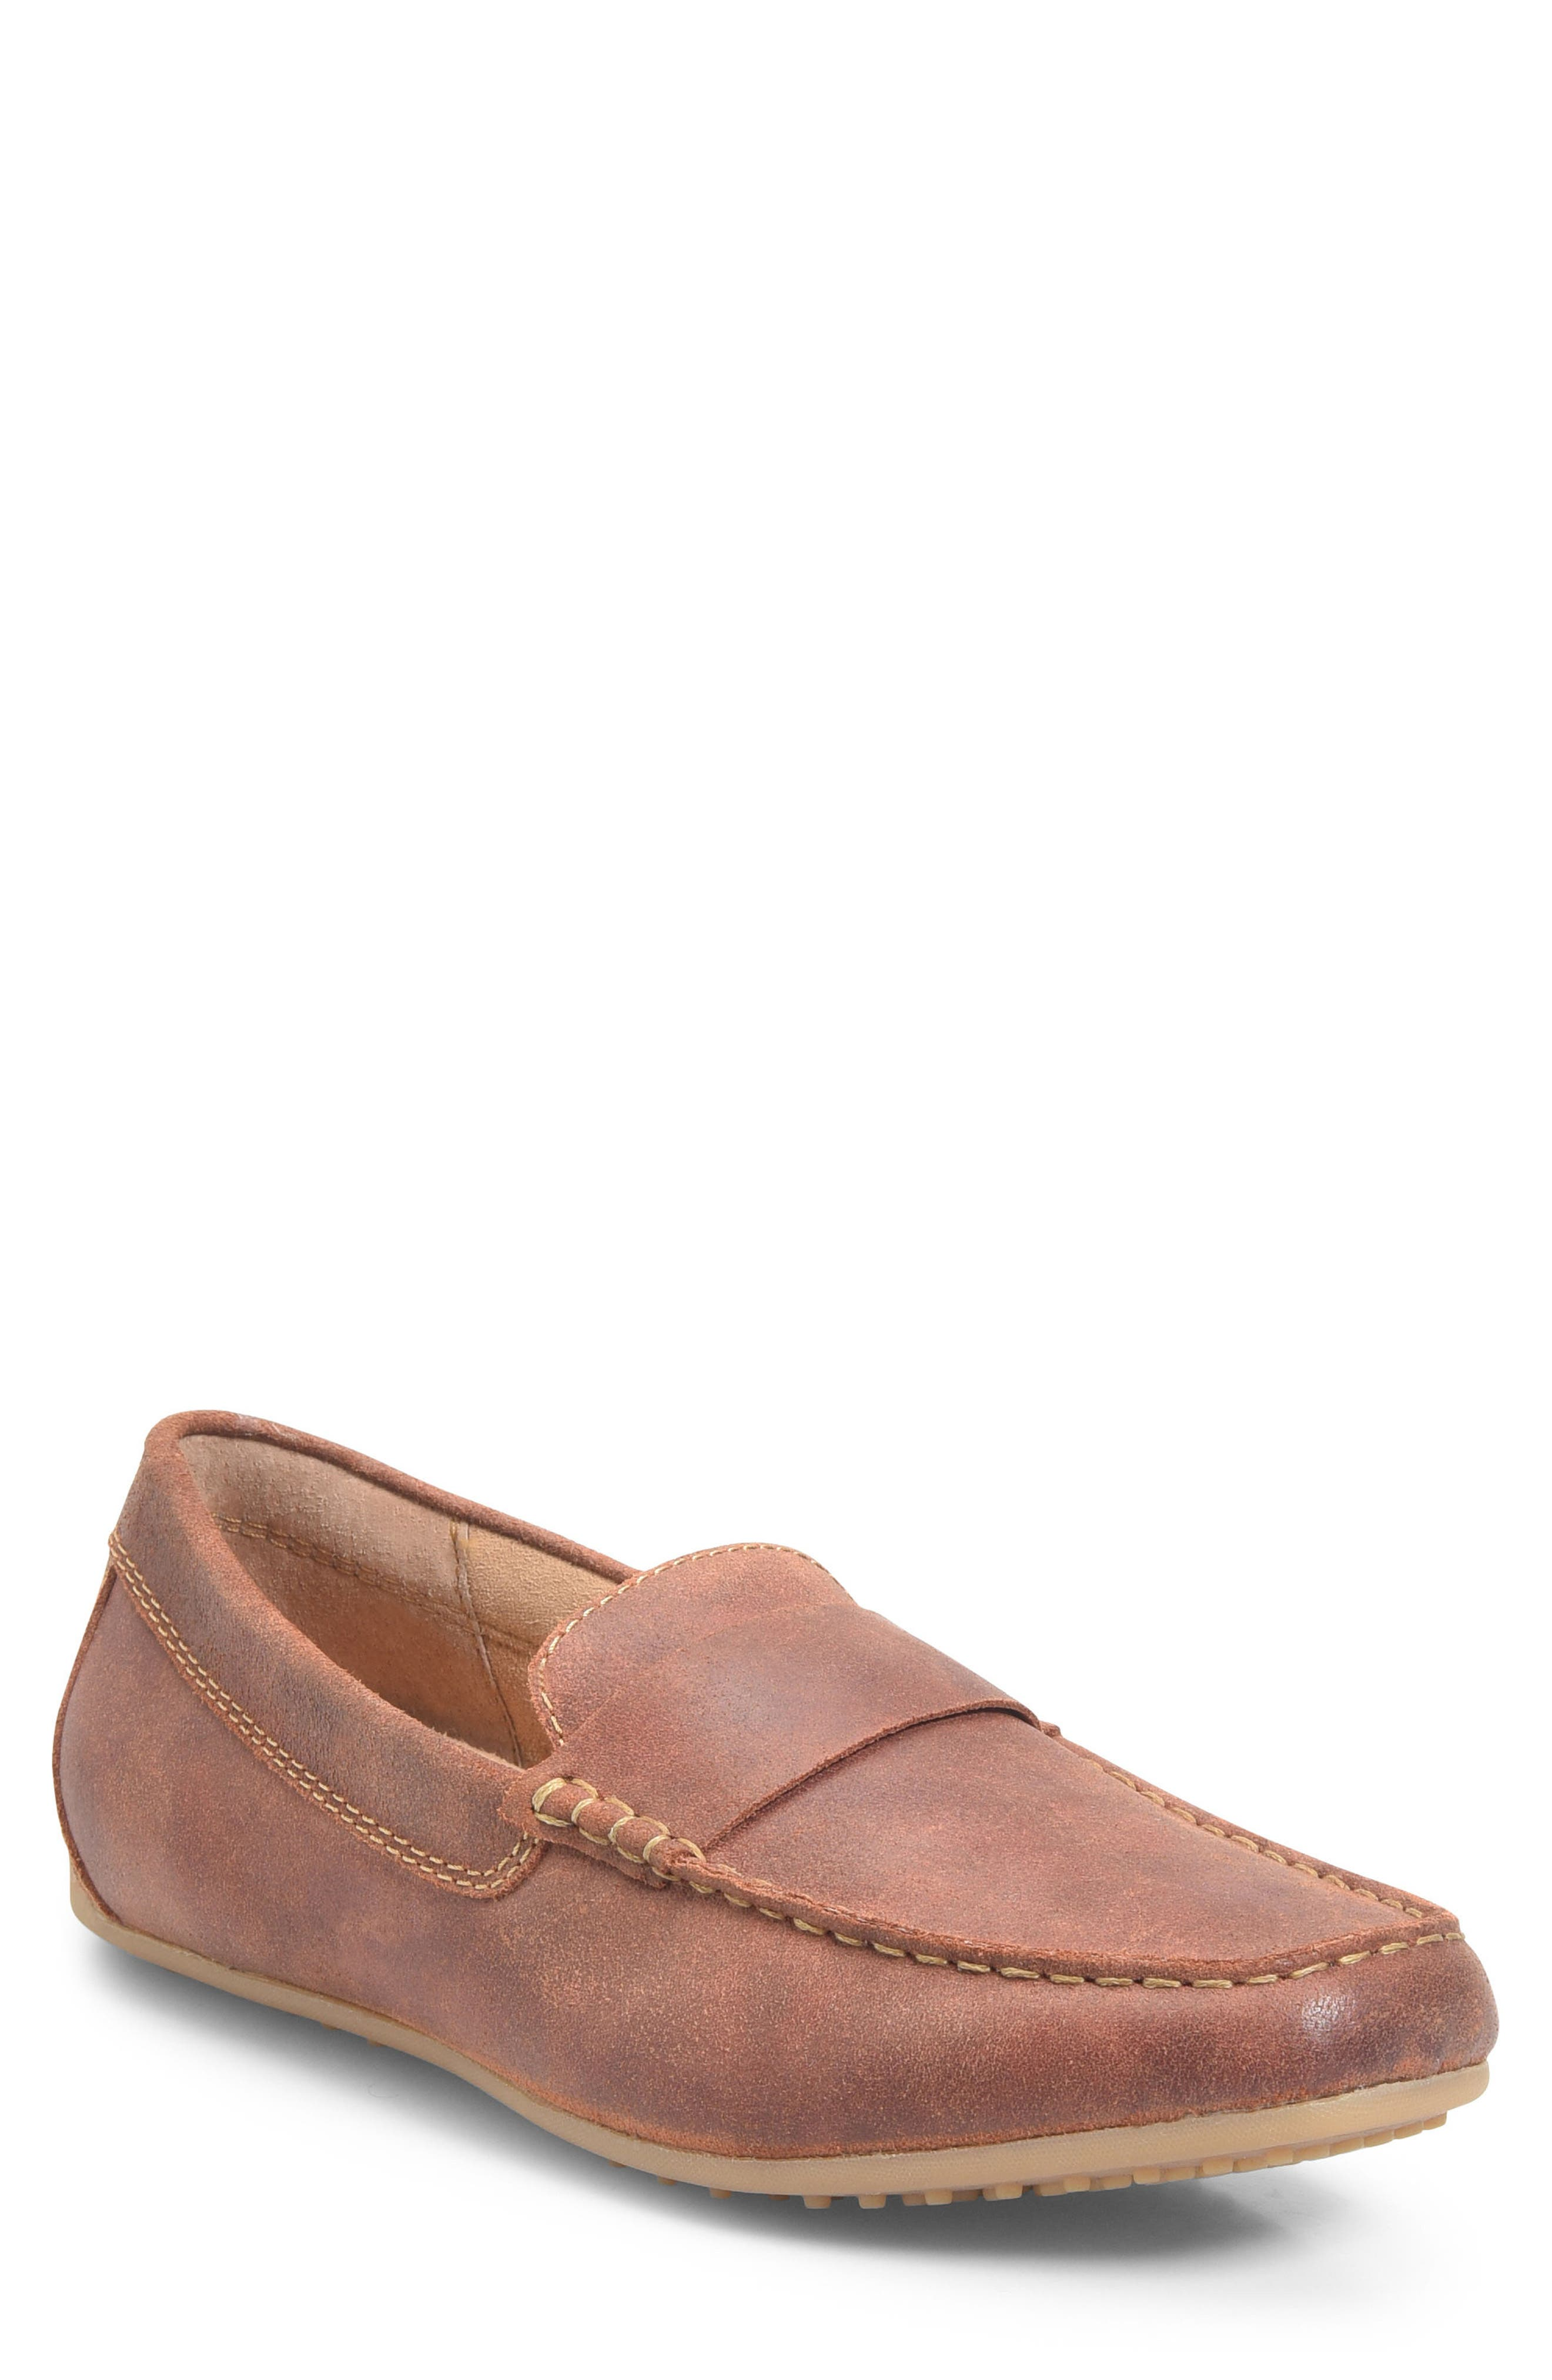 Ratner Driving Loafer,                         Main,                         color, Rust Leather